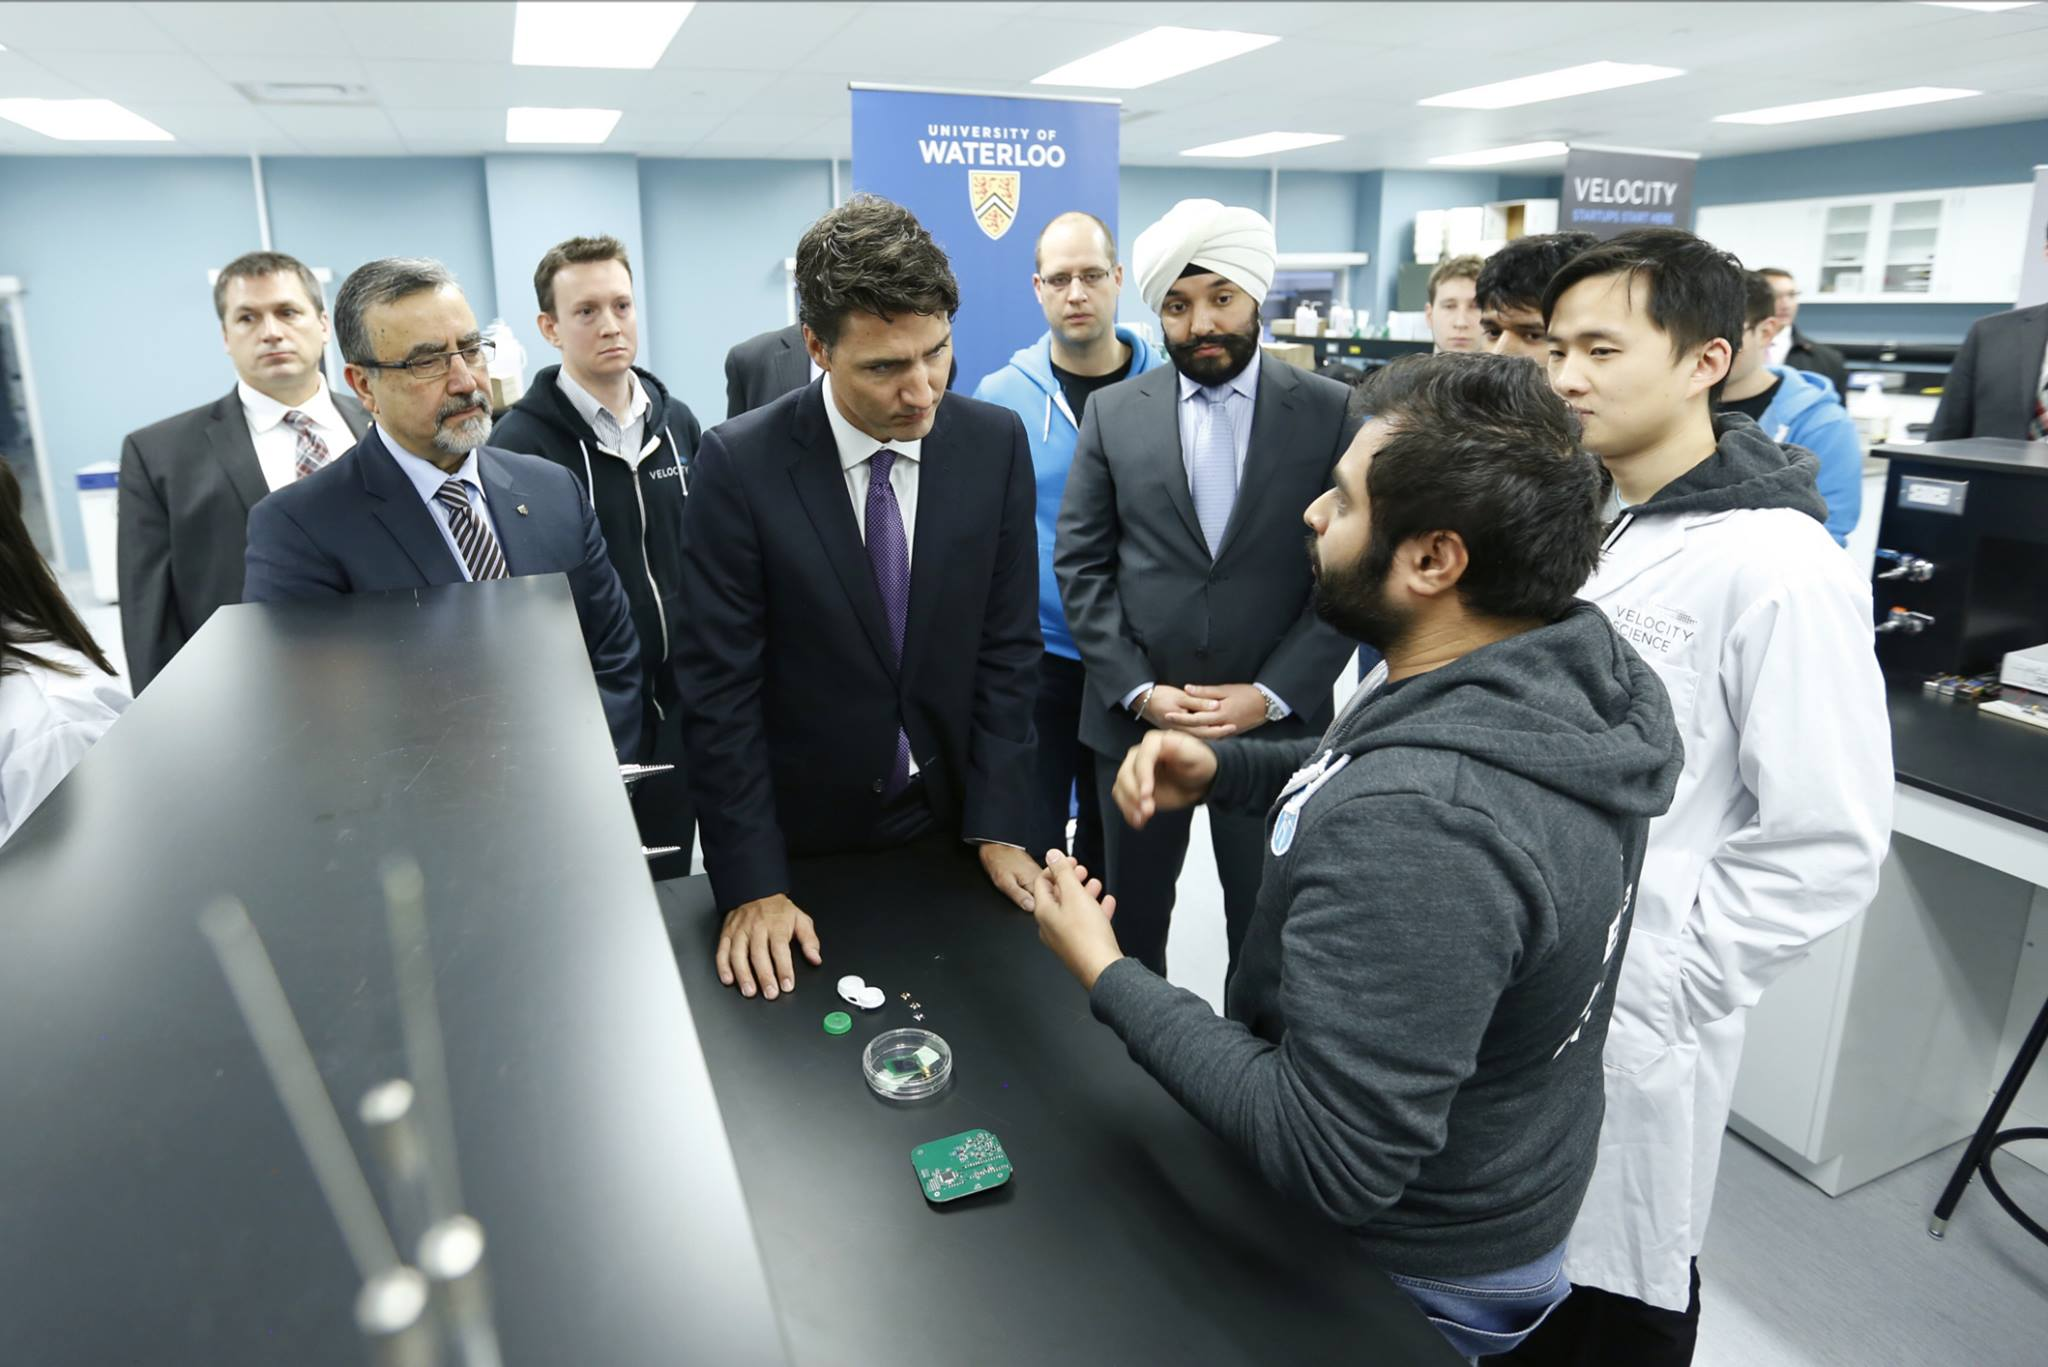 Prime Minister Justin Trudeau (Photo courtesy of PM Trudeau's official Facebook page)